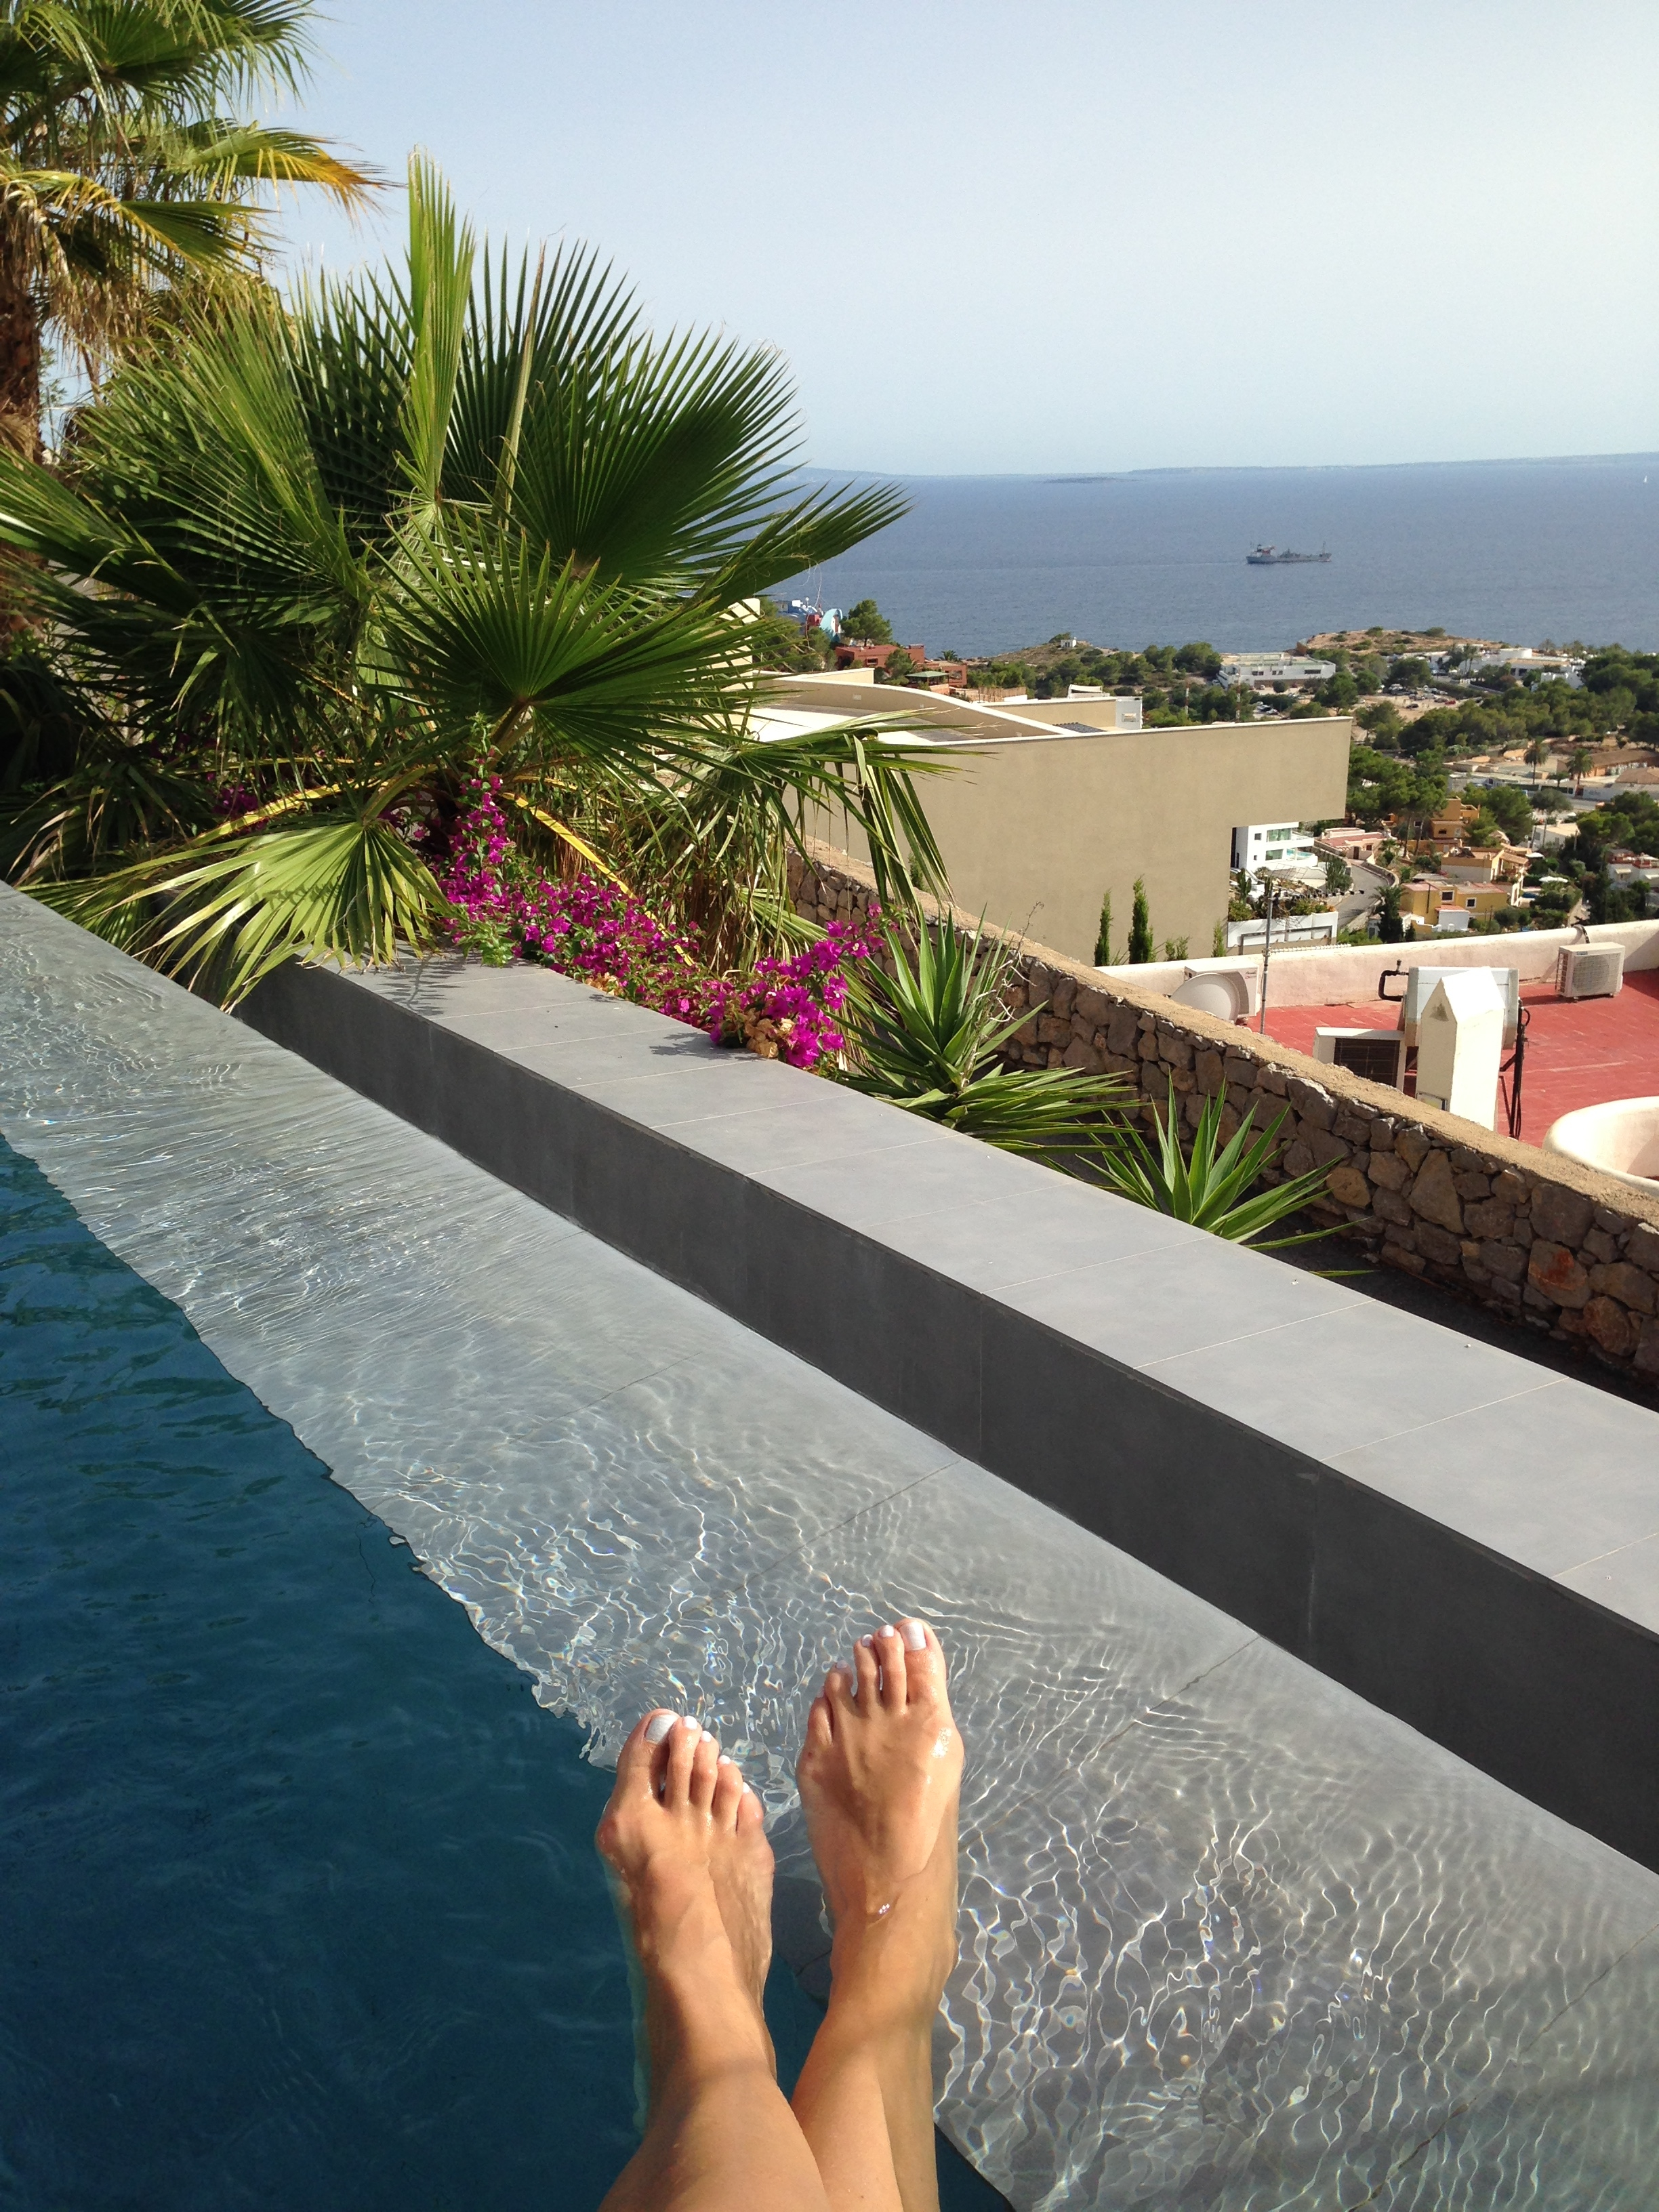 fashion model Janneke Scherpenhuyzen meeki nail polish ibiza feet infinity pool